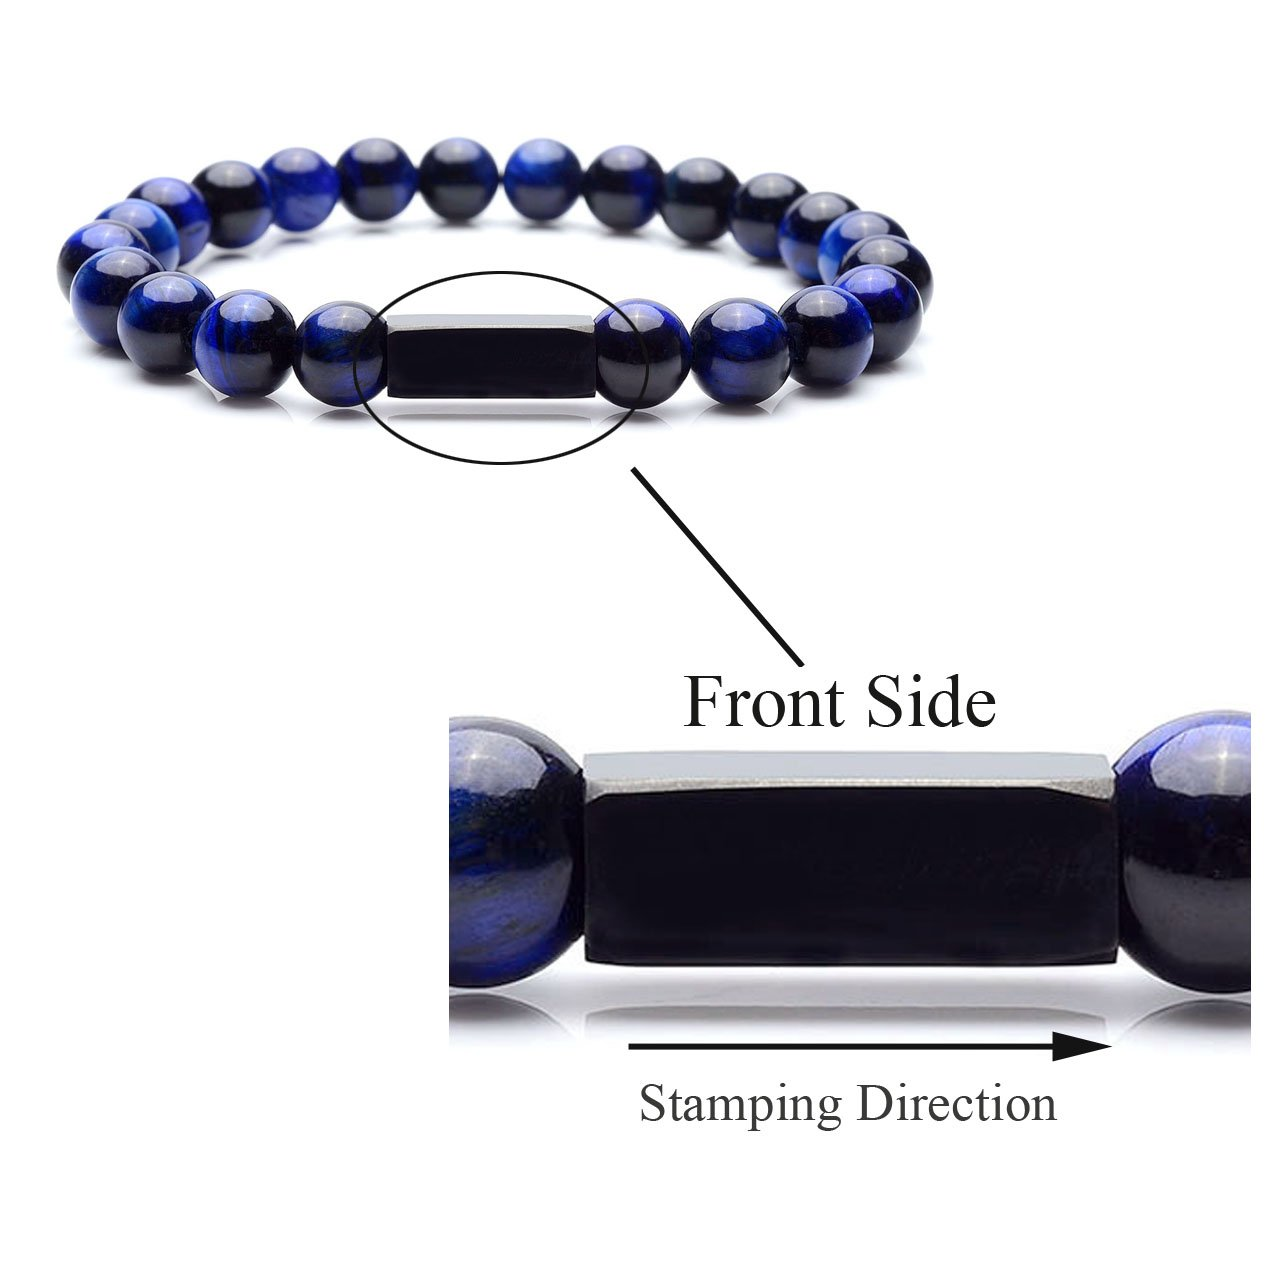 Personalized Master Free Engraving Custom Mens Womens Natural Gemstone Distance Bracelets Round Beads Healing Crystal Stretch Bracelet Set by Personalized Master (Image #4)